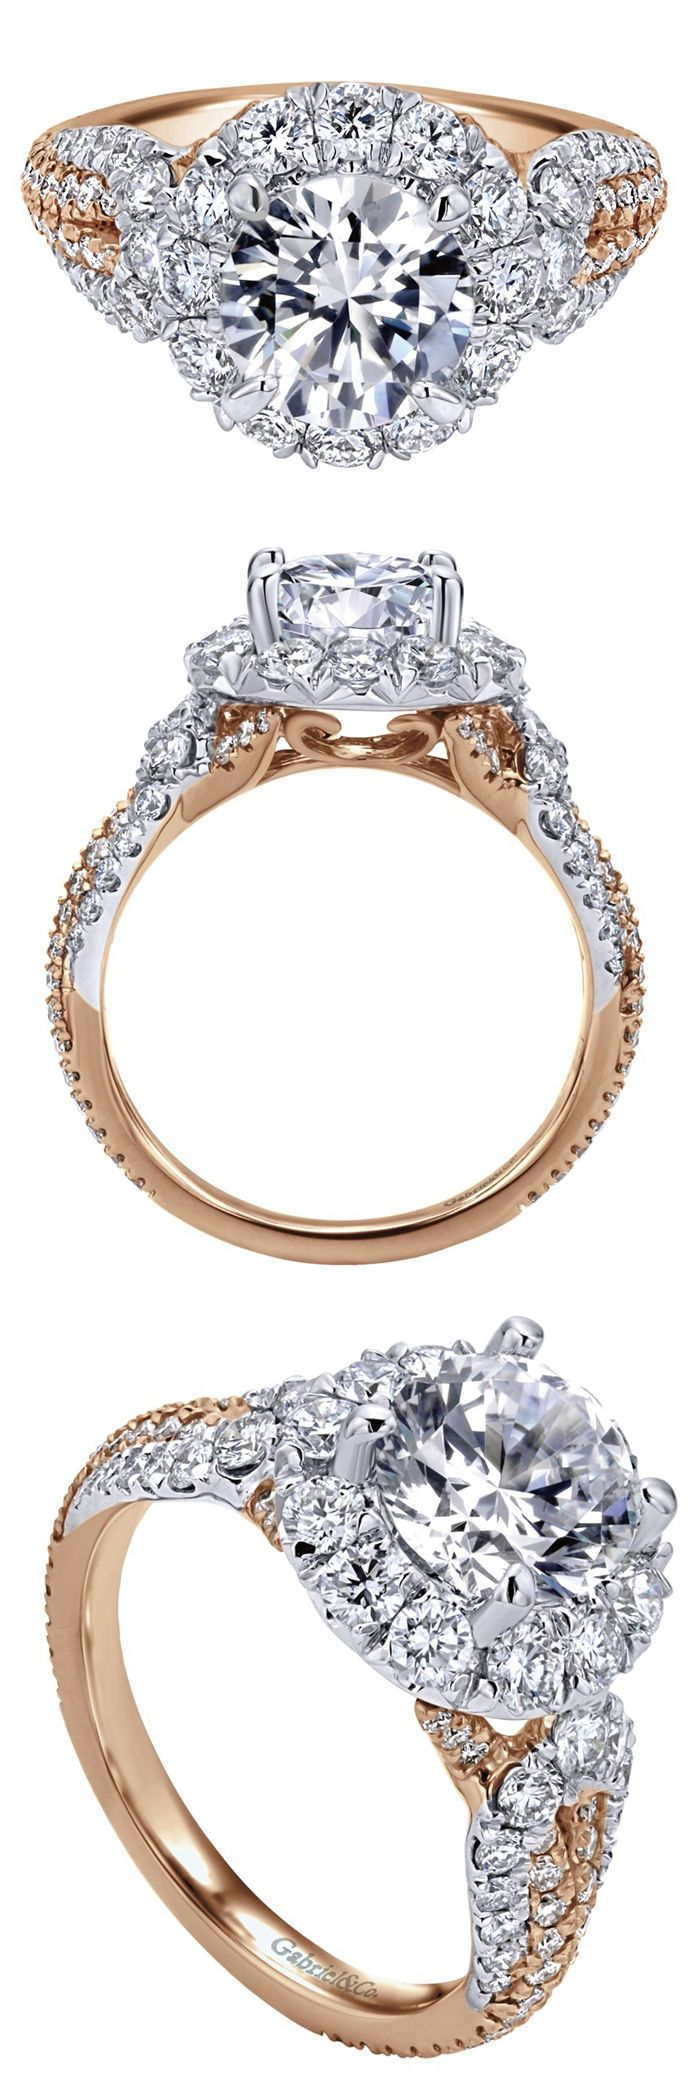 So many diamonds, so lovely!! This gorgeous 18k White and Rose Gold Contemporary Halo Engagement Ring by Gabriel & Co. is to die for! Take knee and propose to the love of your life with this flawless and shining engagement ring!